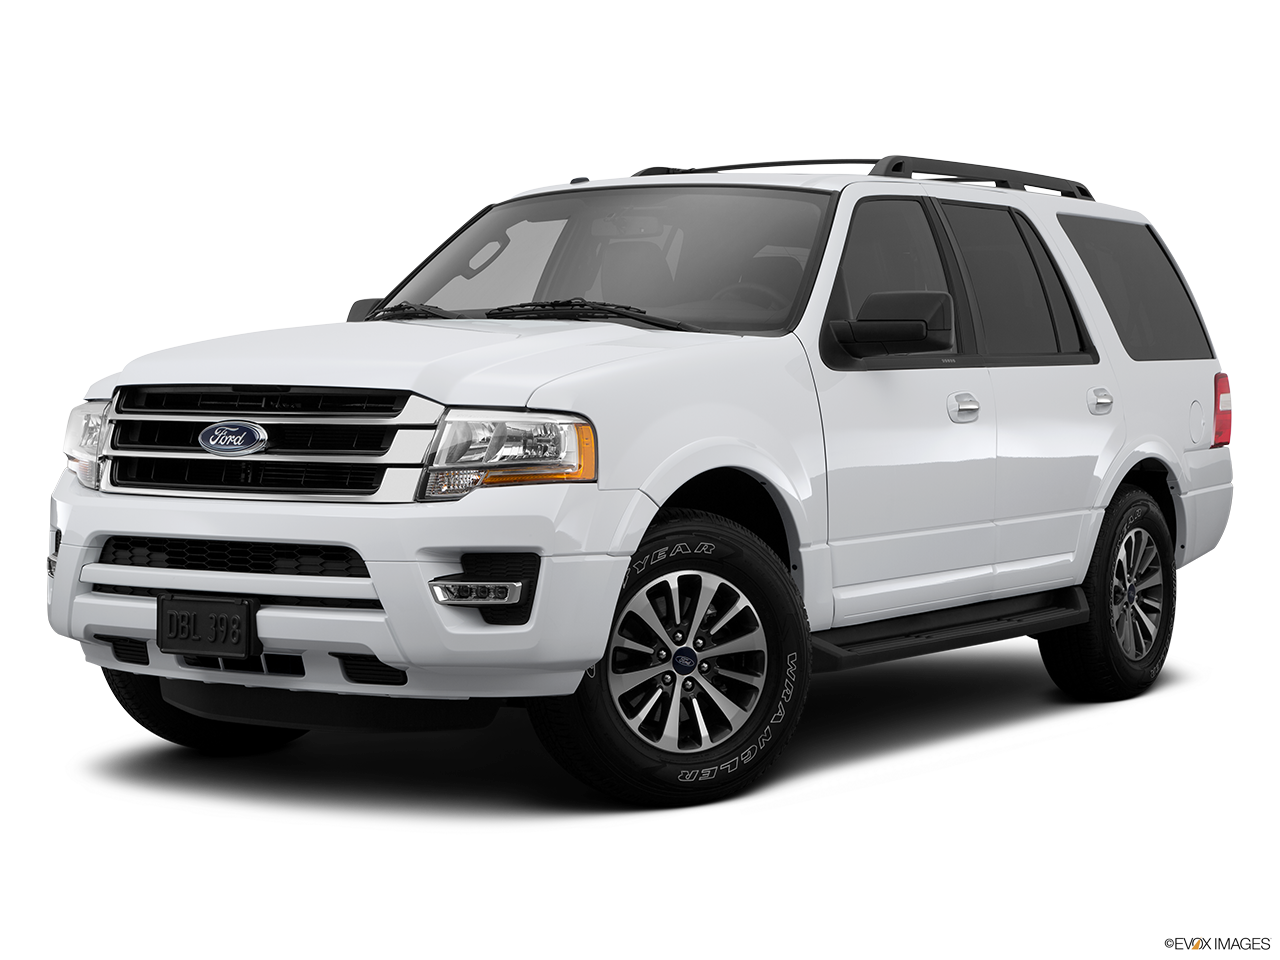 skv better engine small the ford on only still expedition thing bigger is